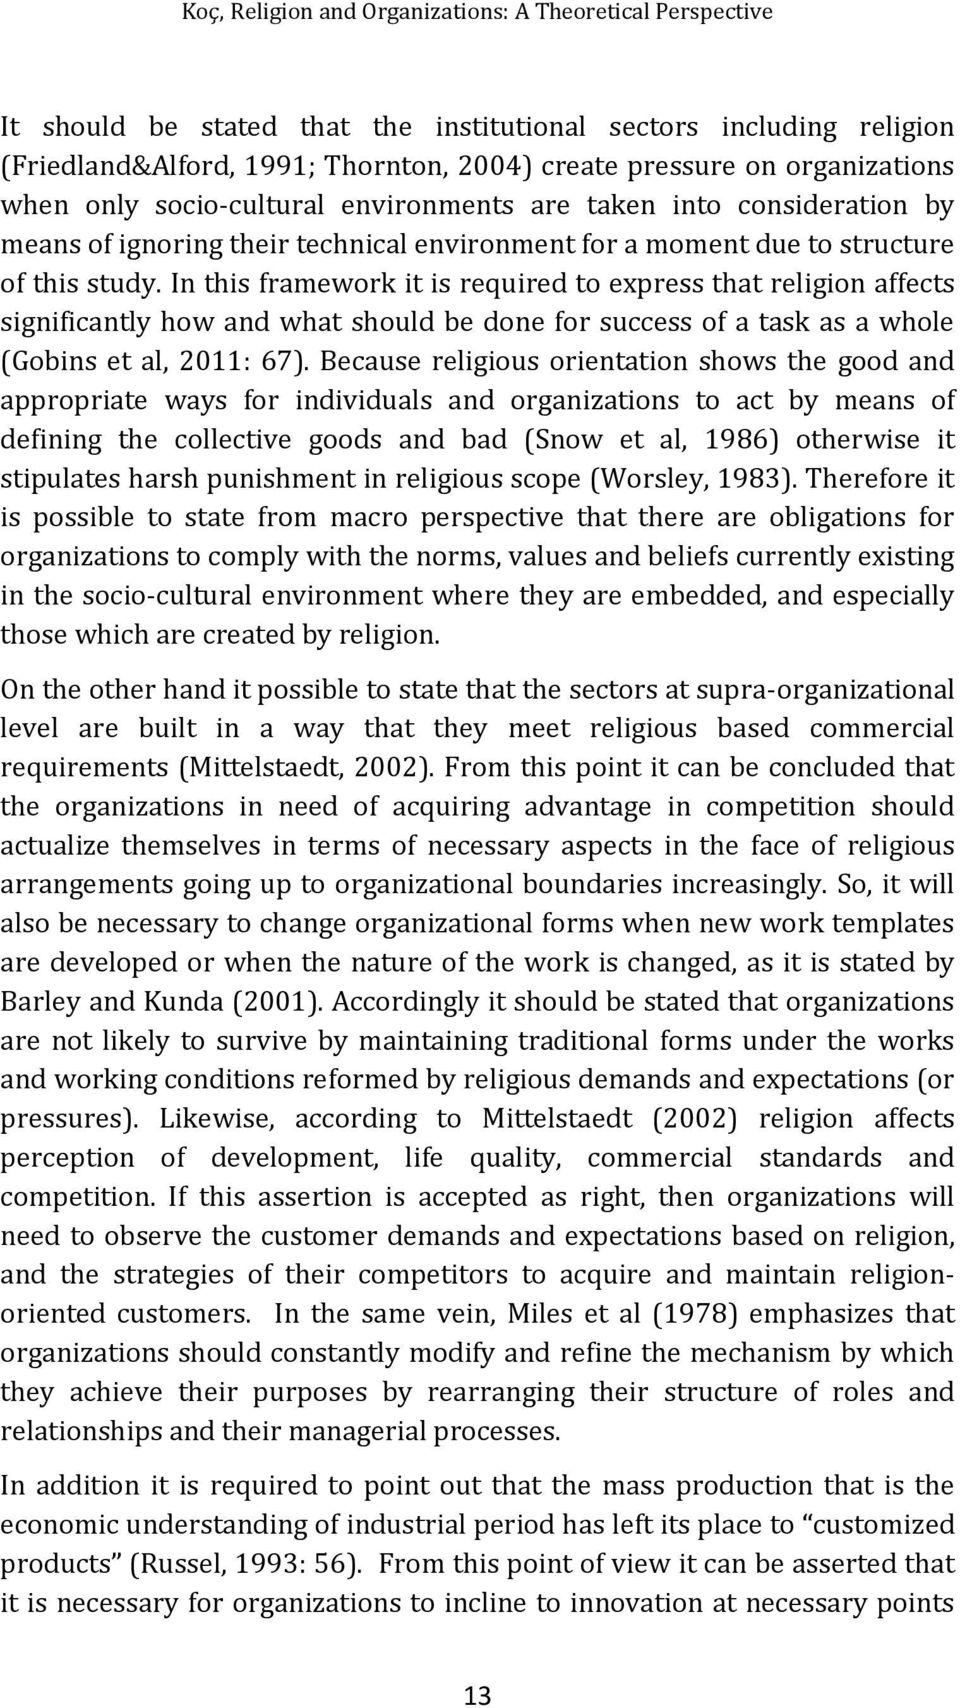 In this framework it is required to express that religion affects significantly how and what should be done for success of a task as a whole (Gobins et al, 2011: 67).